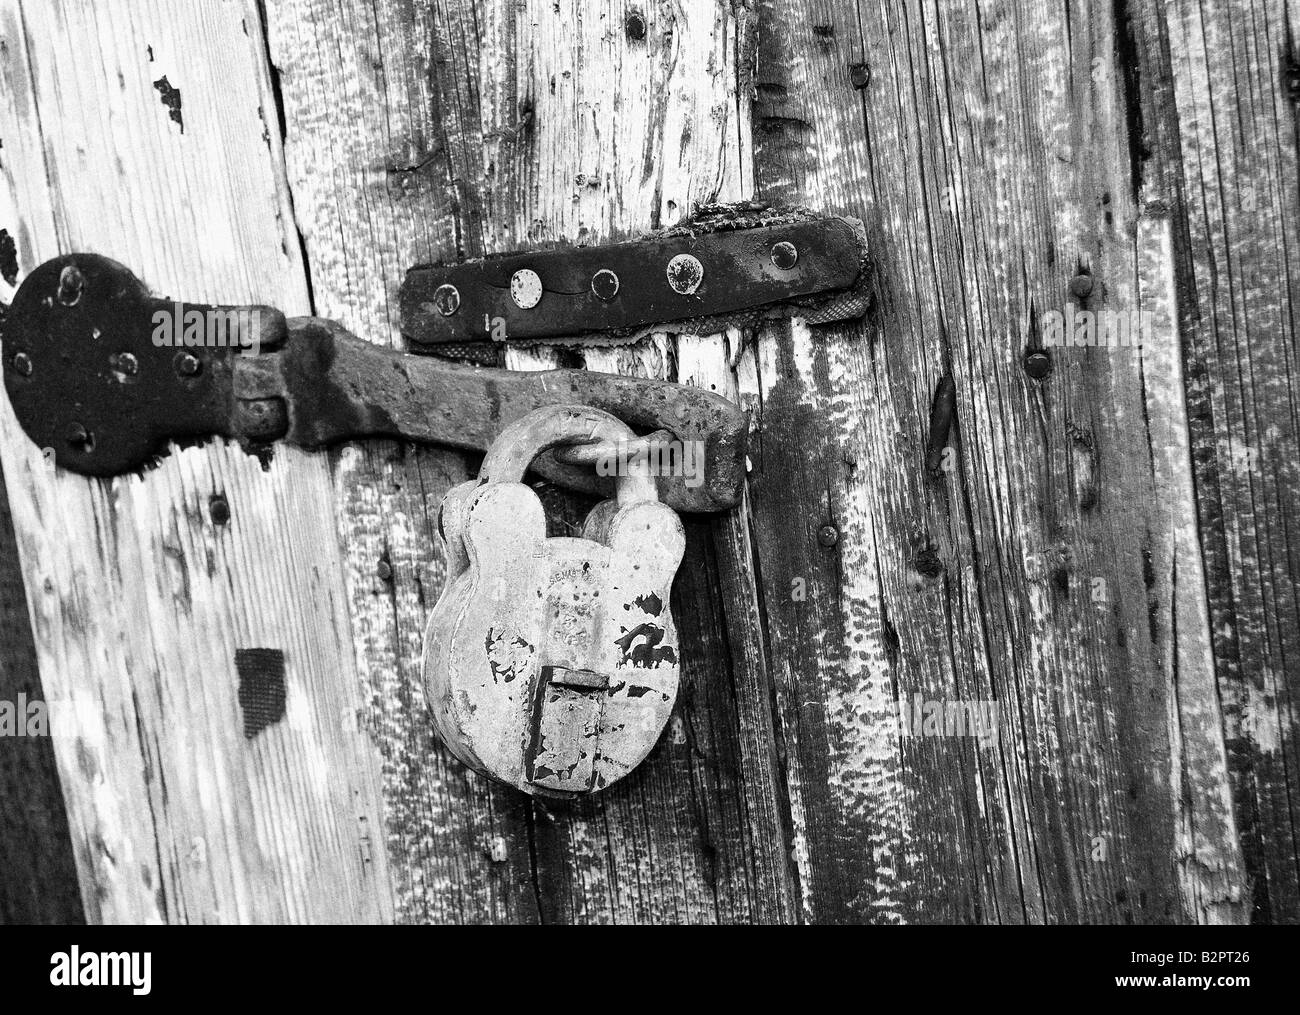 Old Boat Shed padlock - Stock Image